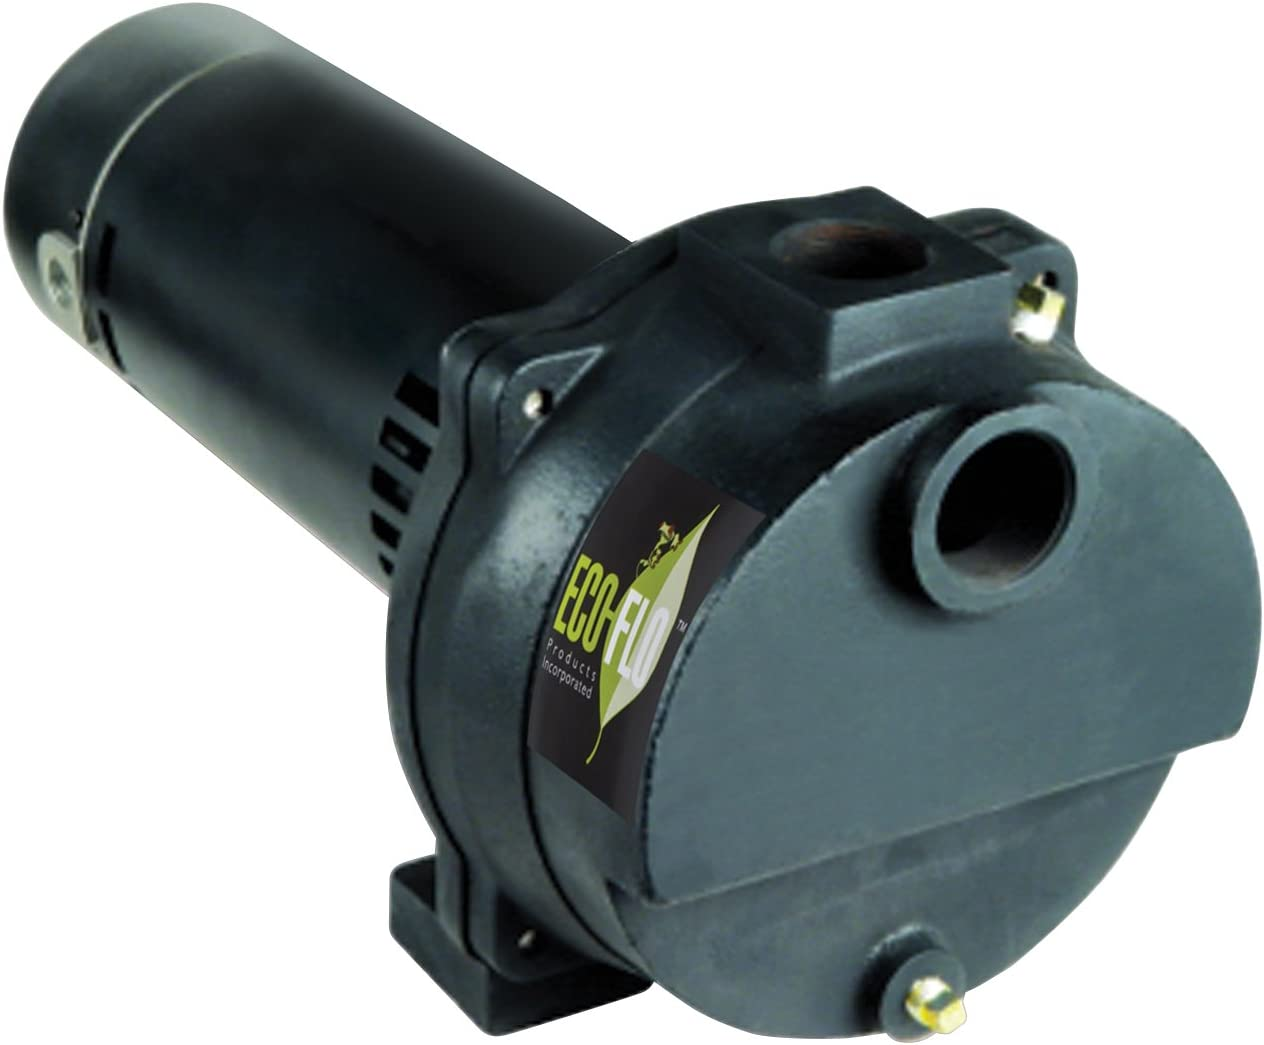 ECO-FLO Products EFLS15 Cast Iron Self-Priming Irrigation Pump,1-1/2 HP, 67 GPM